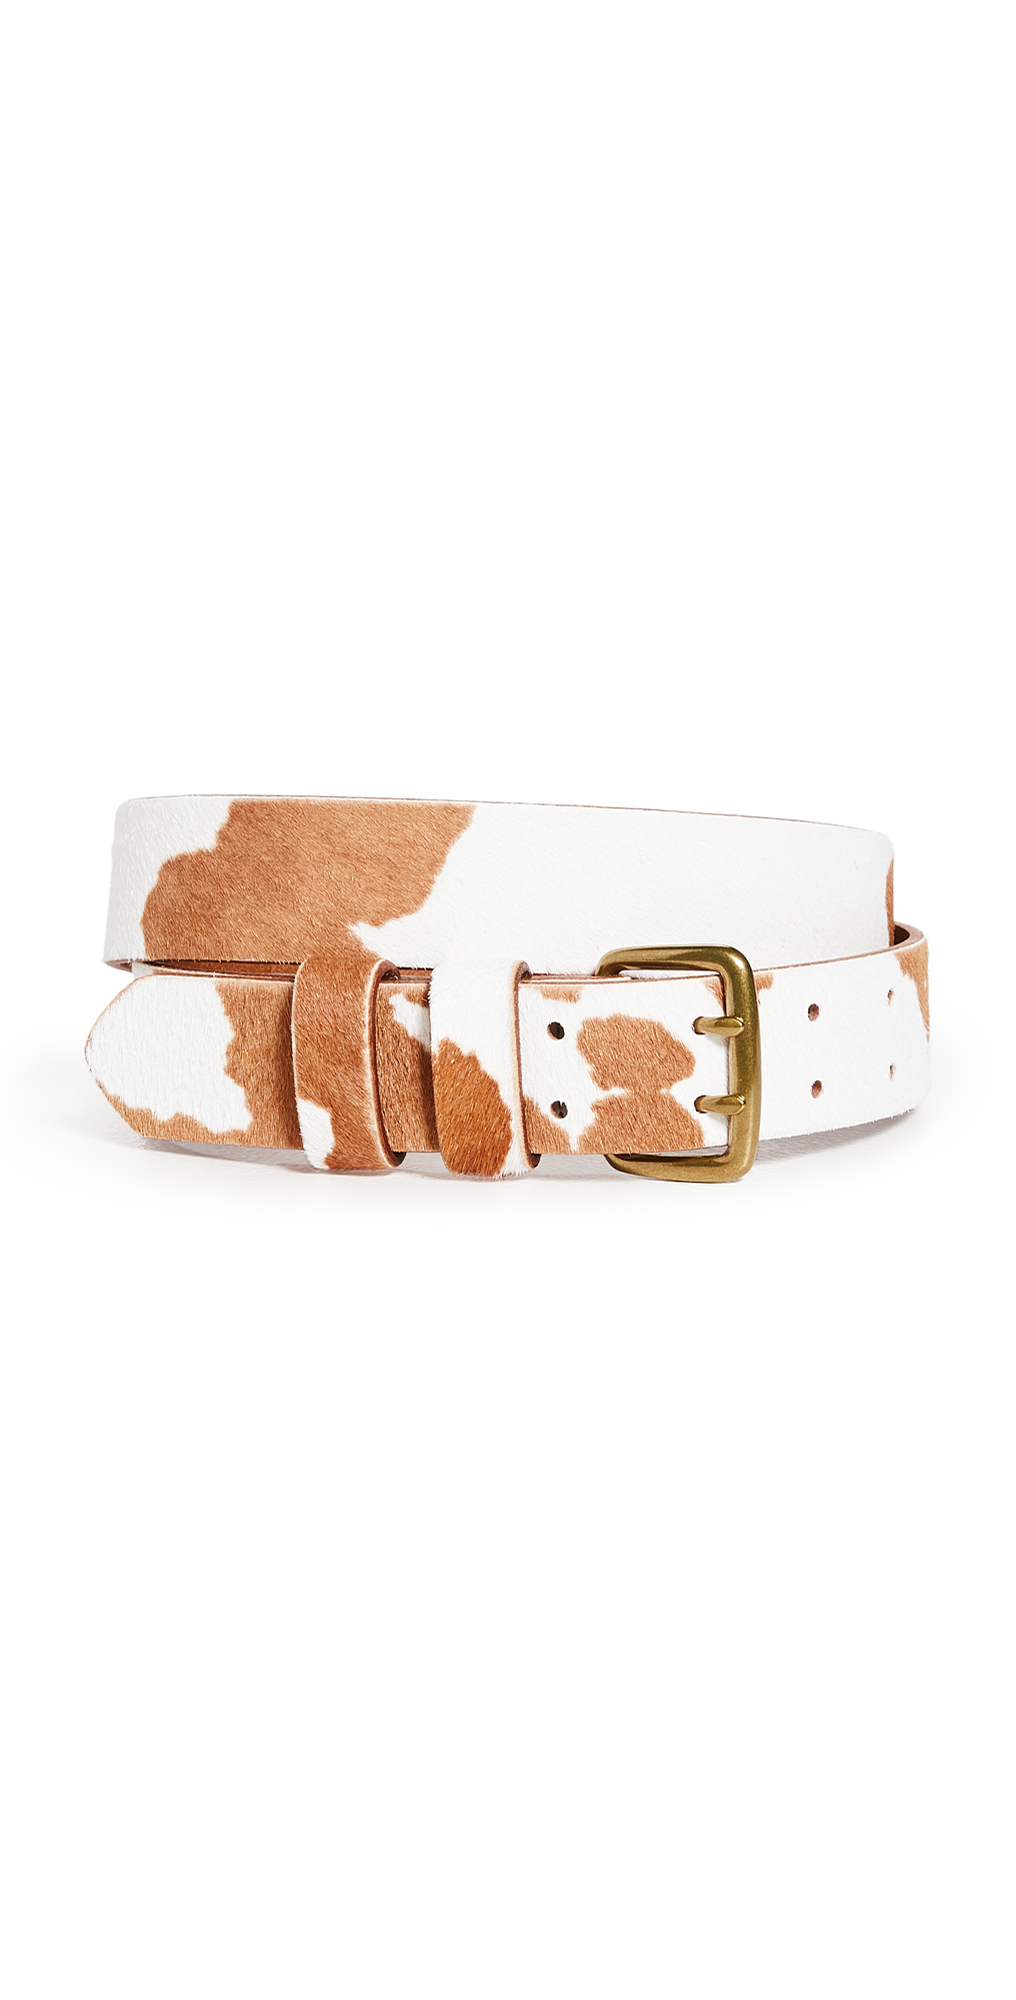 Madewell Double Prong Belt